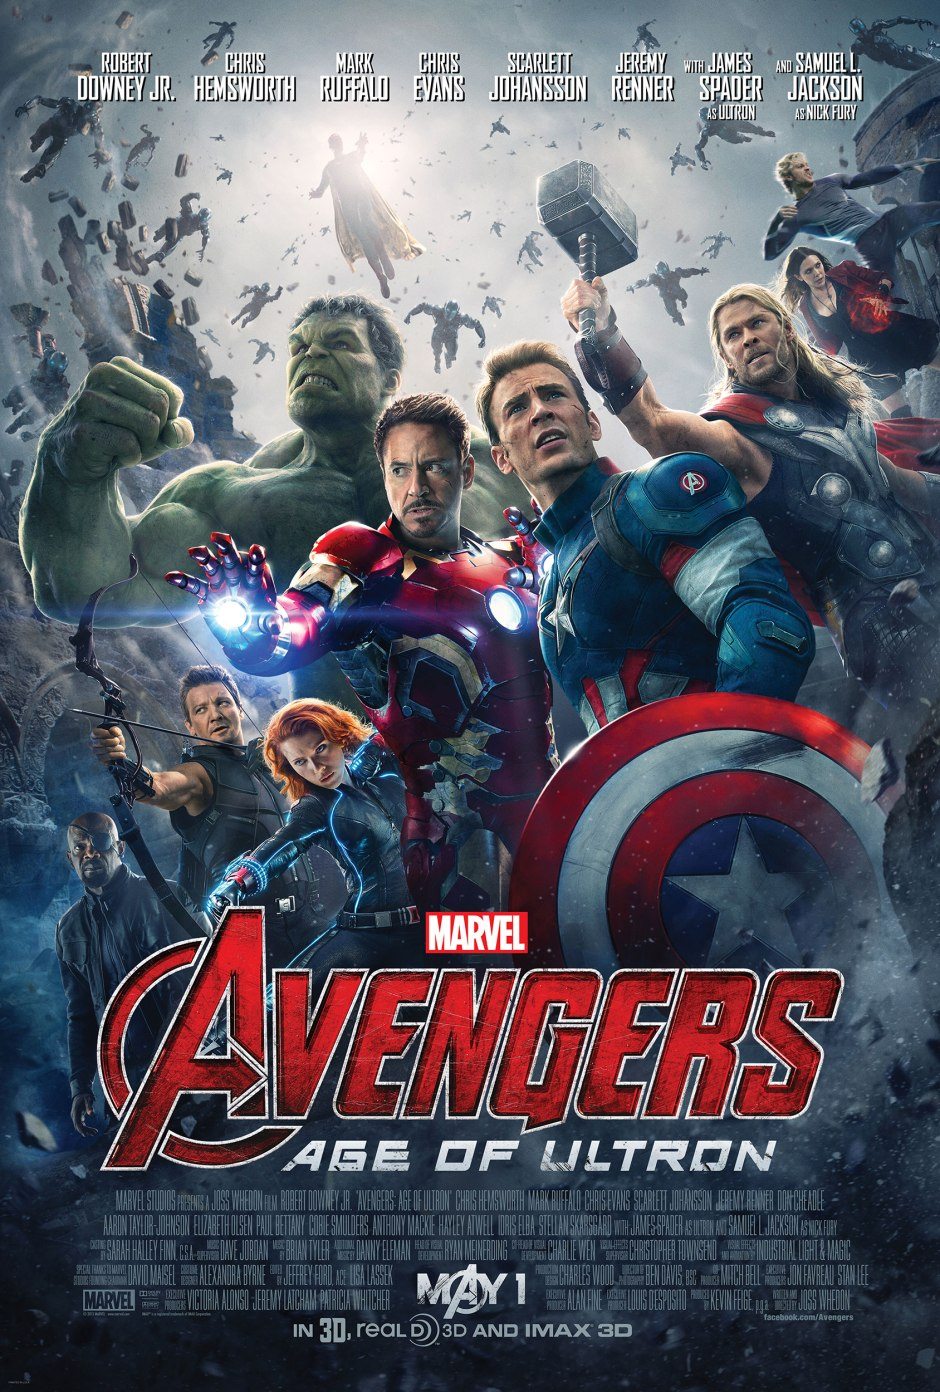 avengers-2-movie-poster-marvel-cinematic-universe-1038898